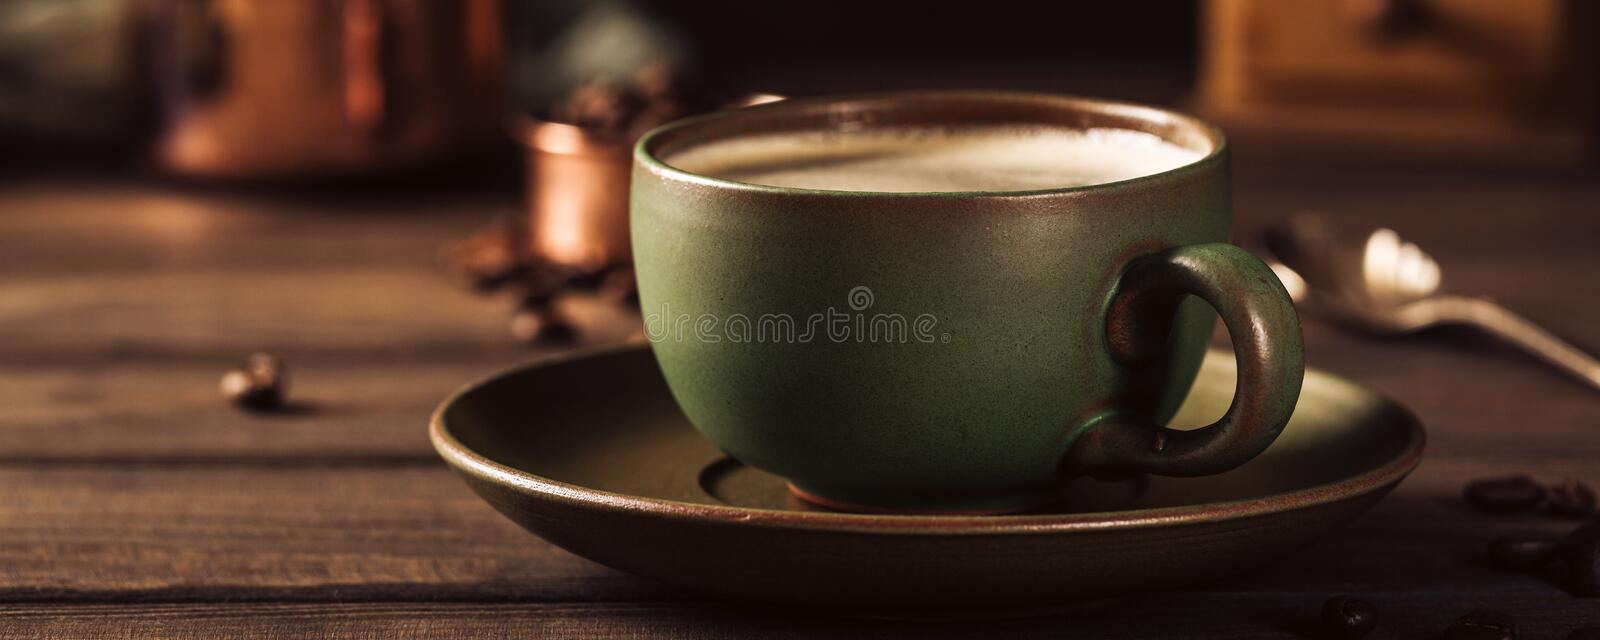 Green cup of coffee with coffee grinder stock images